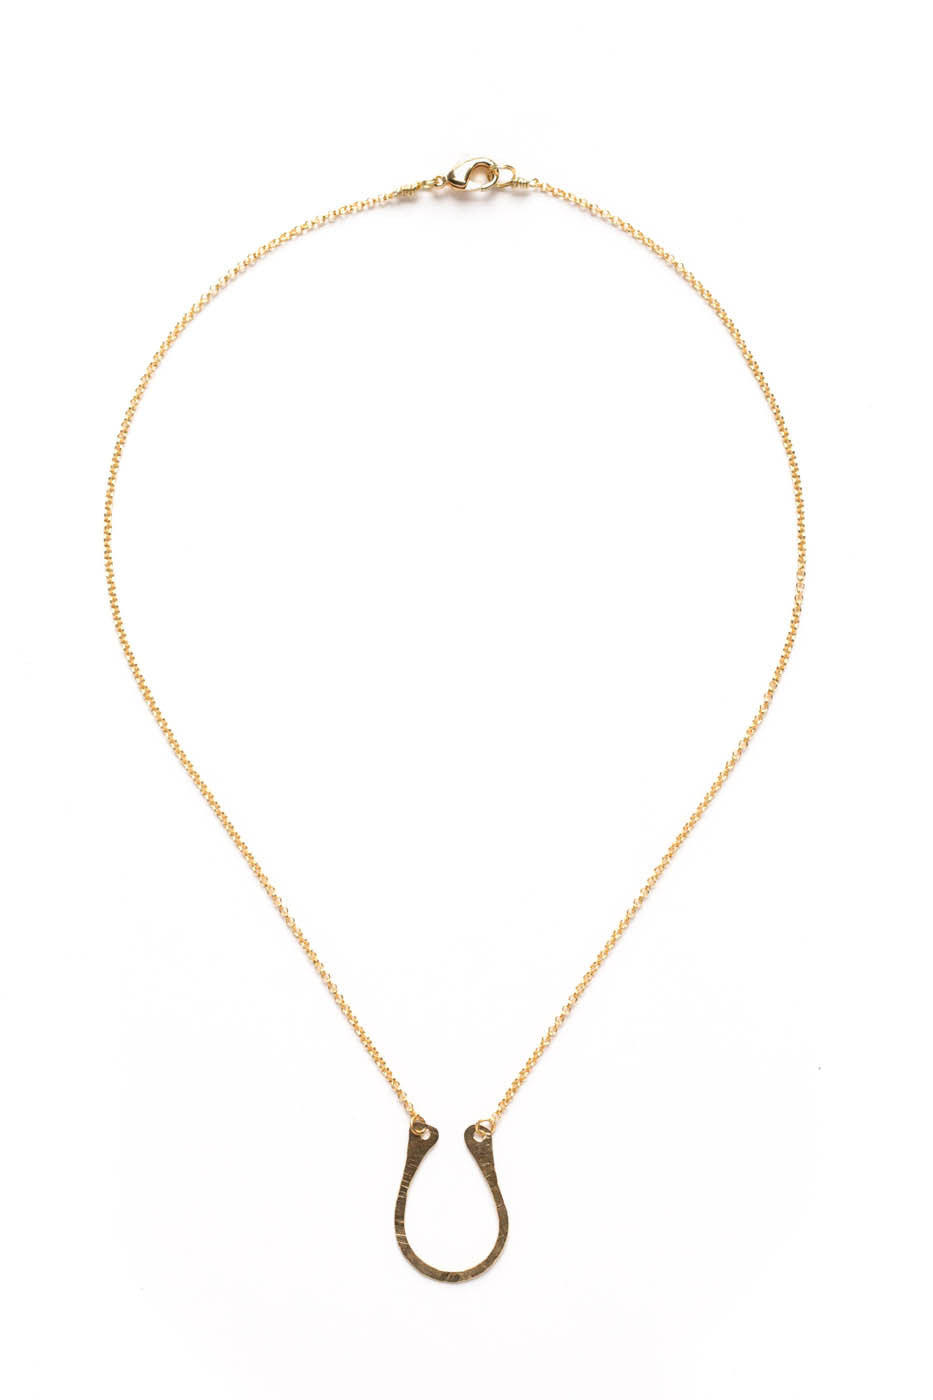 Horseshoe Hammered Goldfill Necklace on a Gold Chain